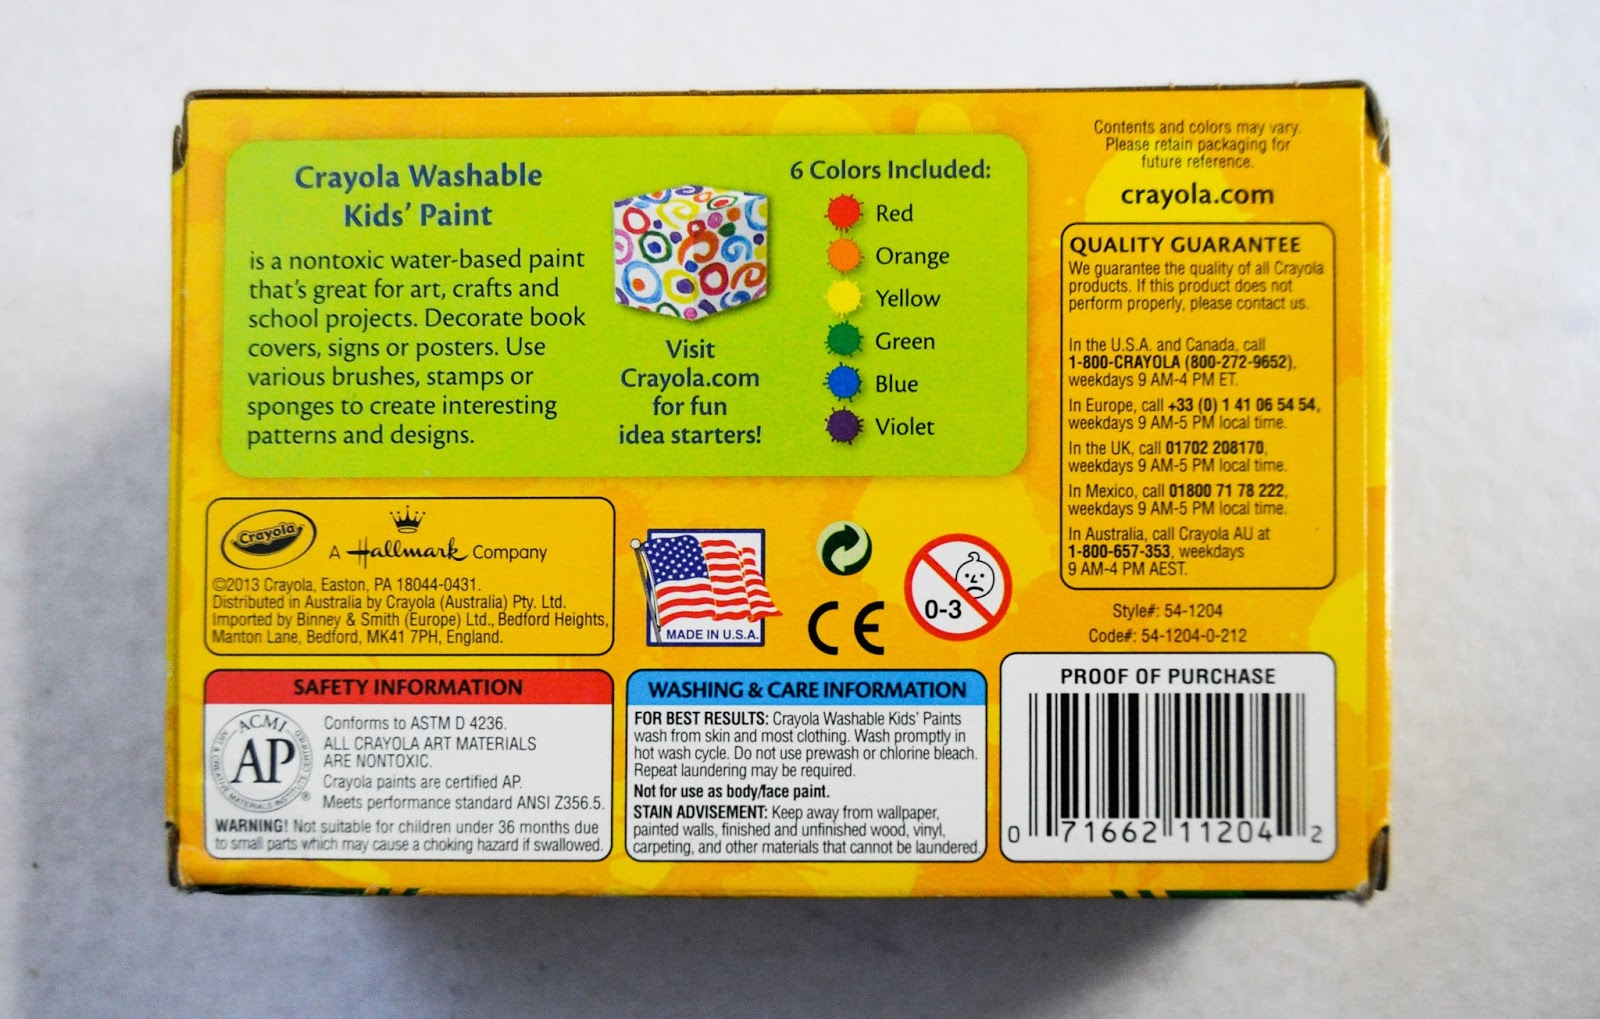 Crayola Washable Kids Paint Whats Inside The Box Jennys Crayon Colored Pencils Long Isi 24 2014 Individual